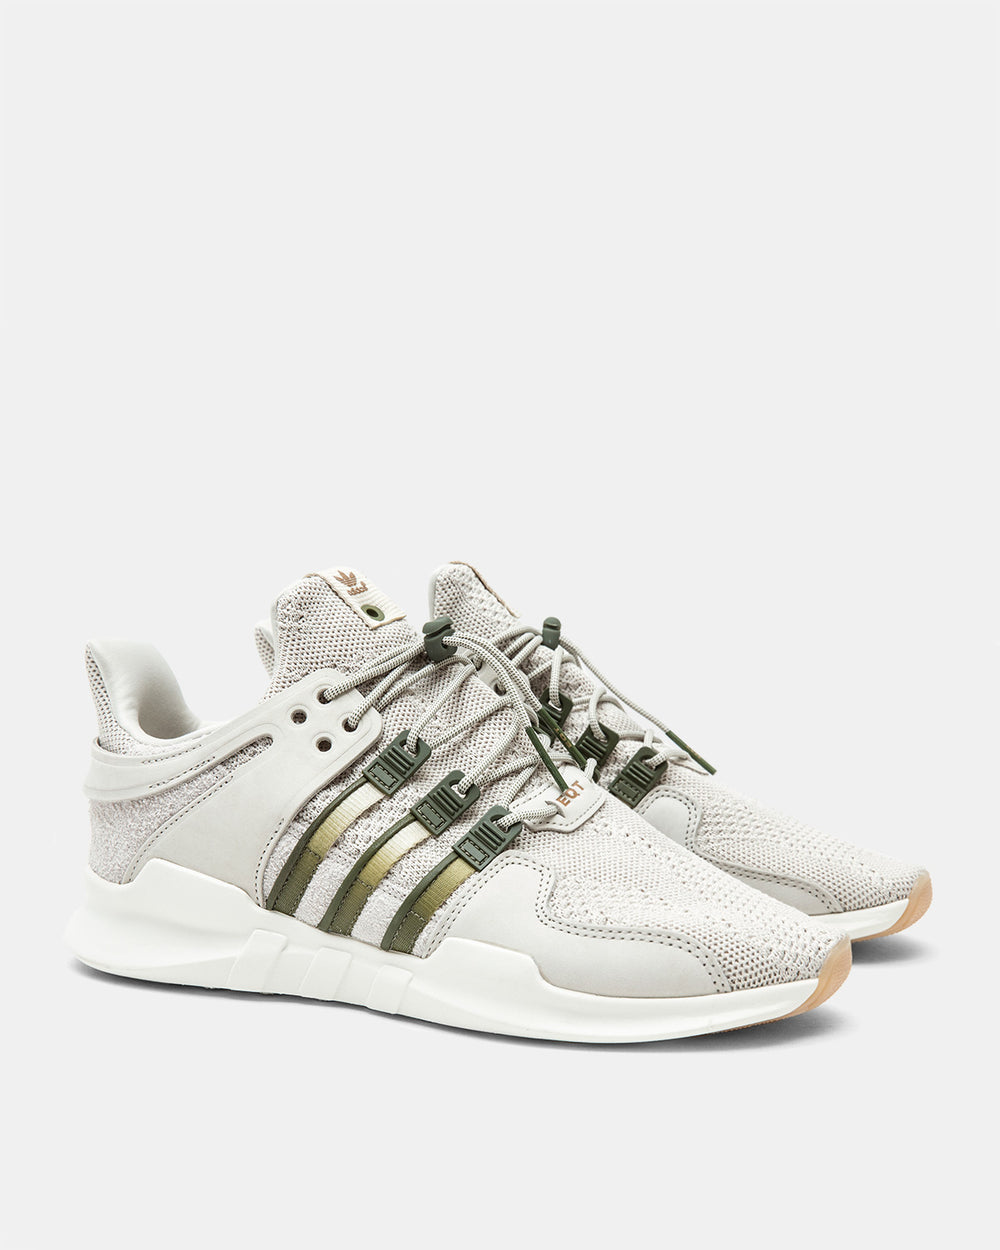 adidas Consortium x Highs and Lows EQT Support ADV (Linen | Cardboard)